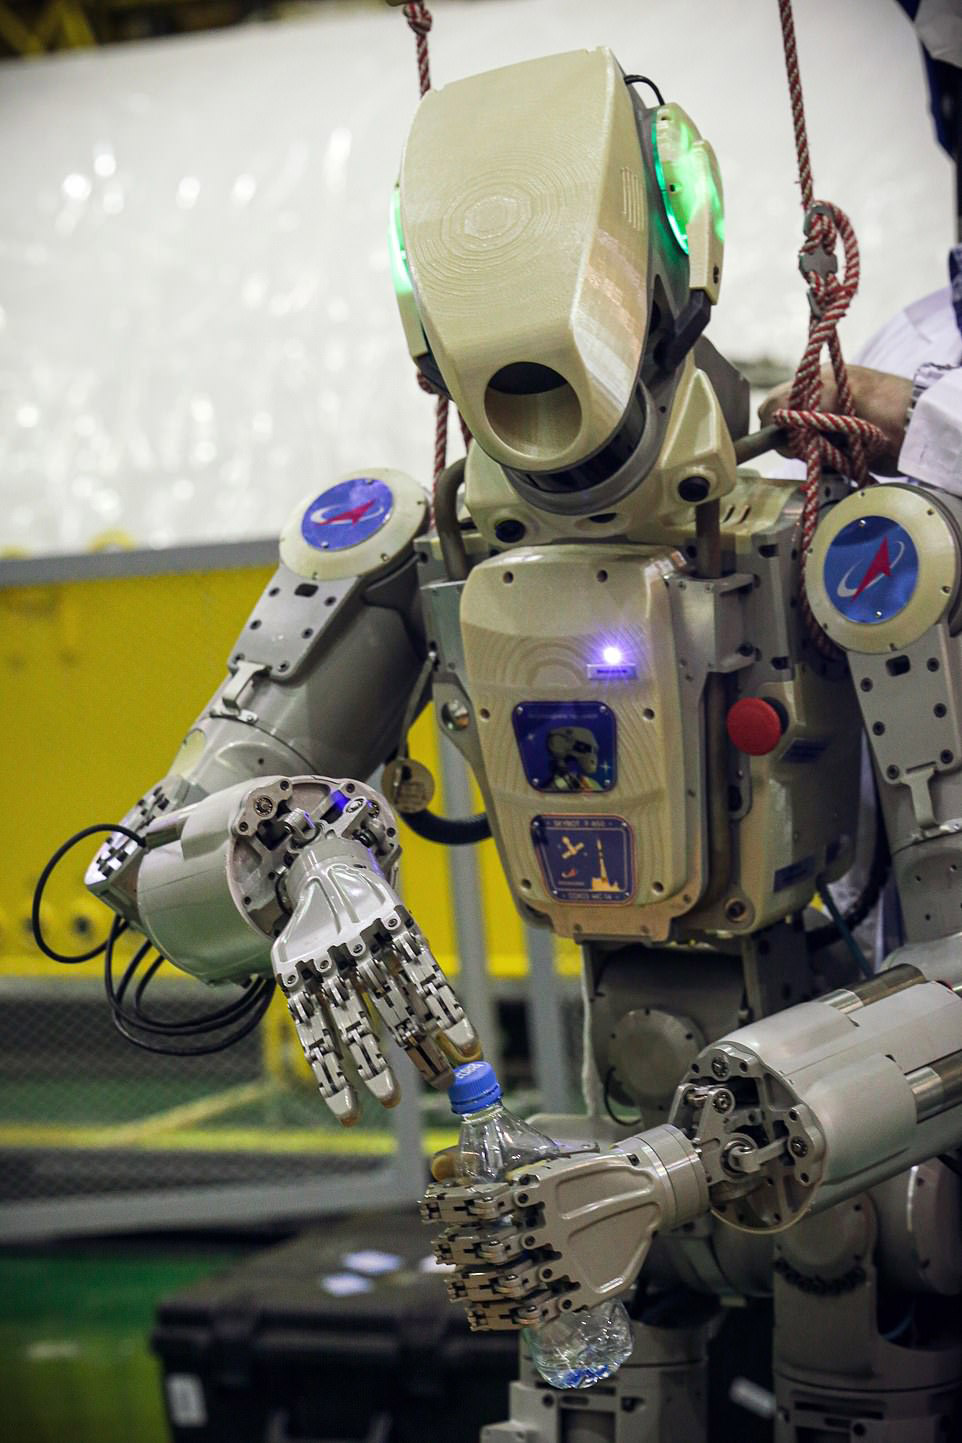 Russia Fedor Space Robot